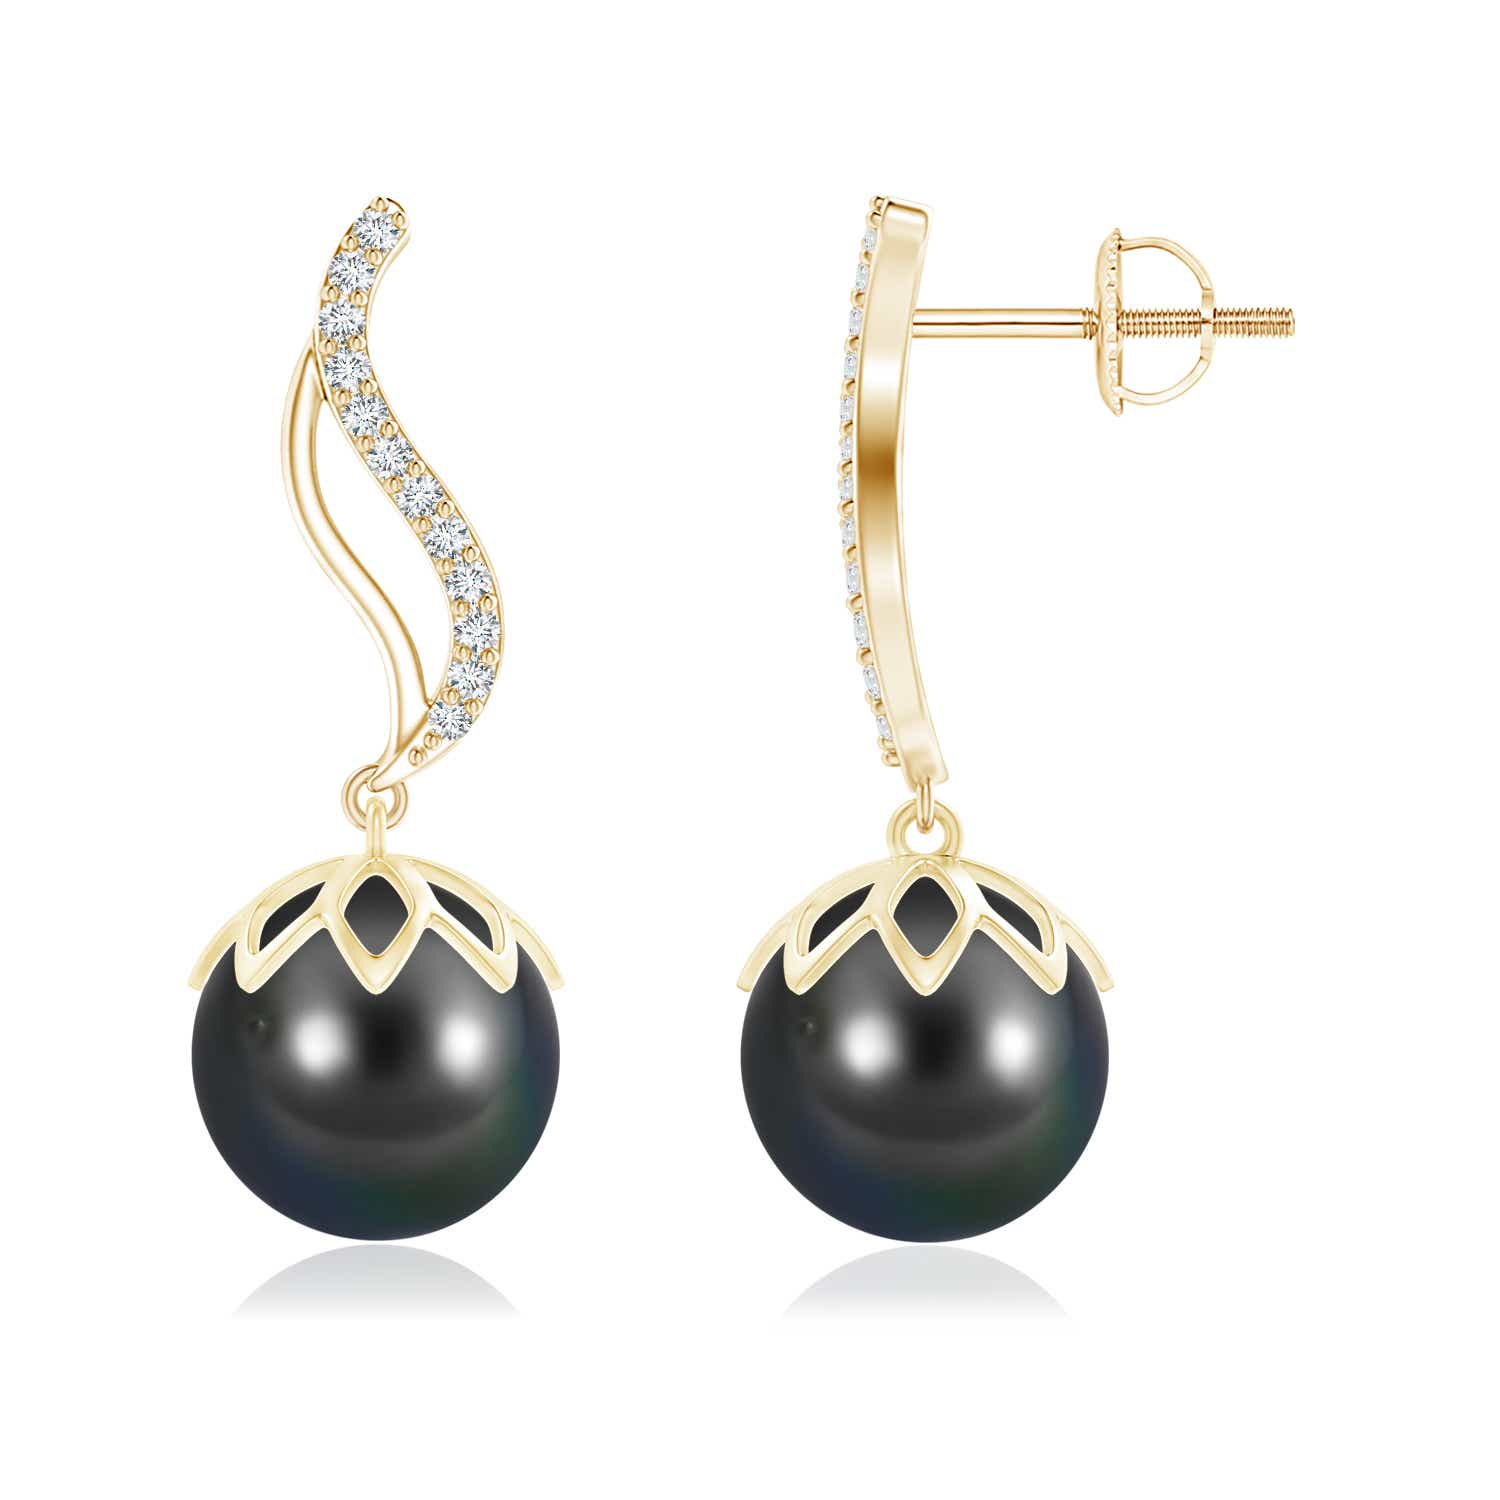 10mm-Tahitian-Cultured-Pearl-Diamond-Flame-Earrings-14K-White-Gold-Silver